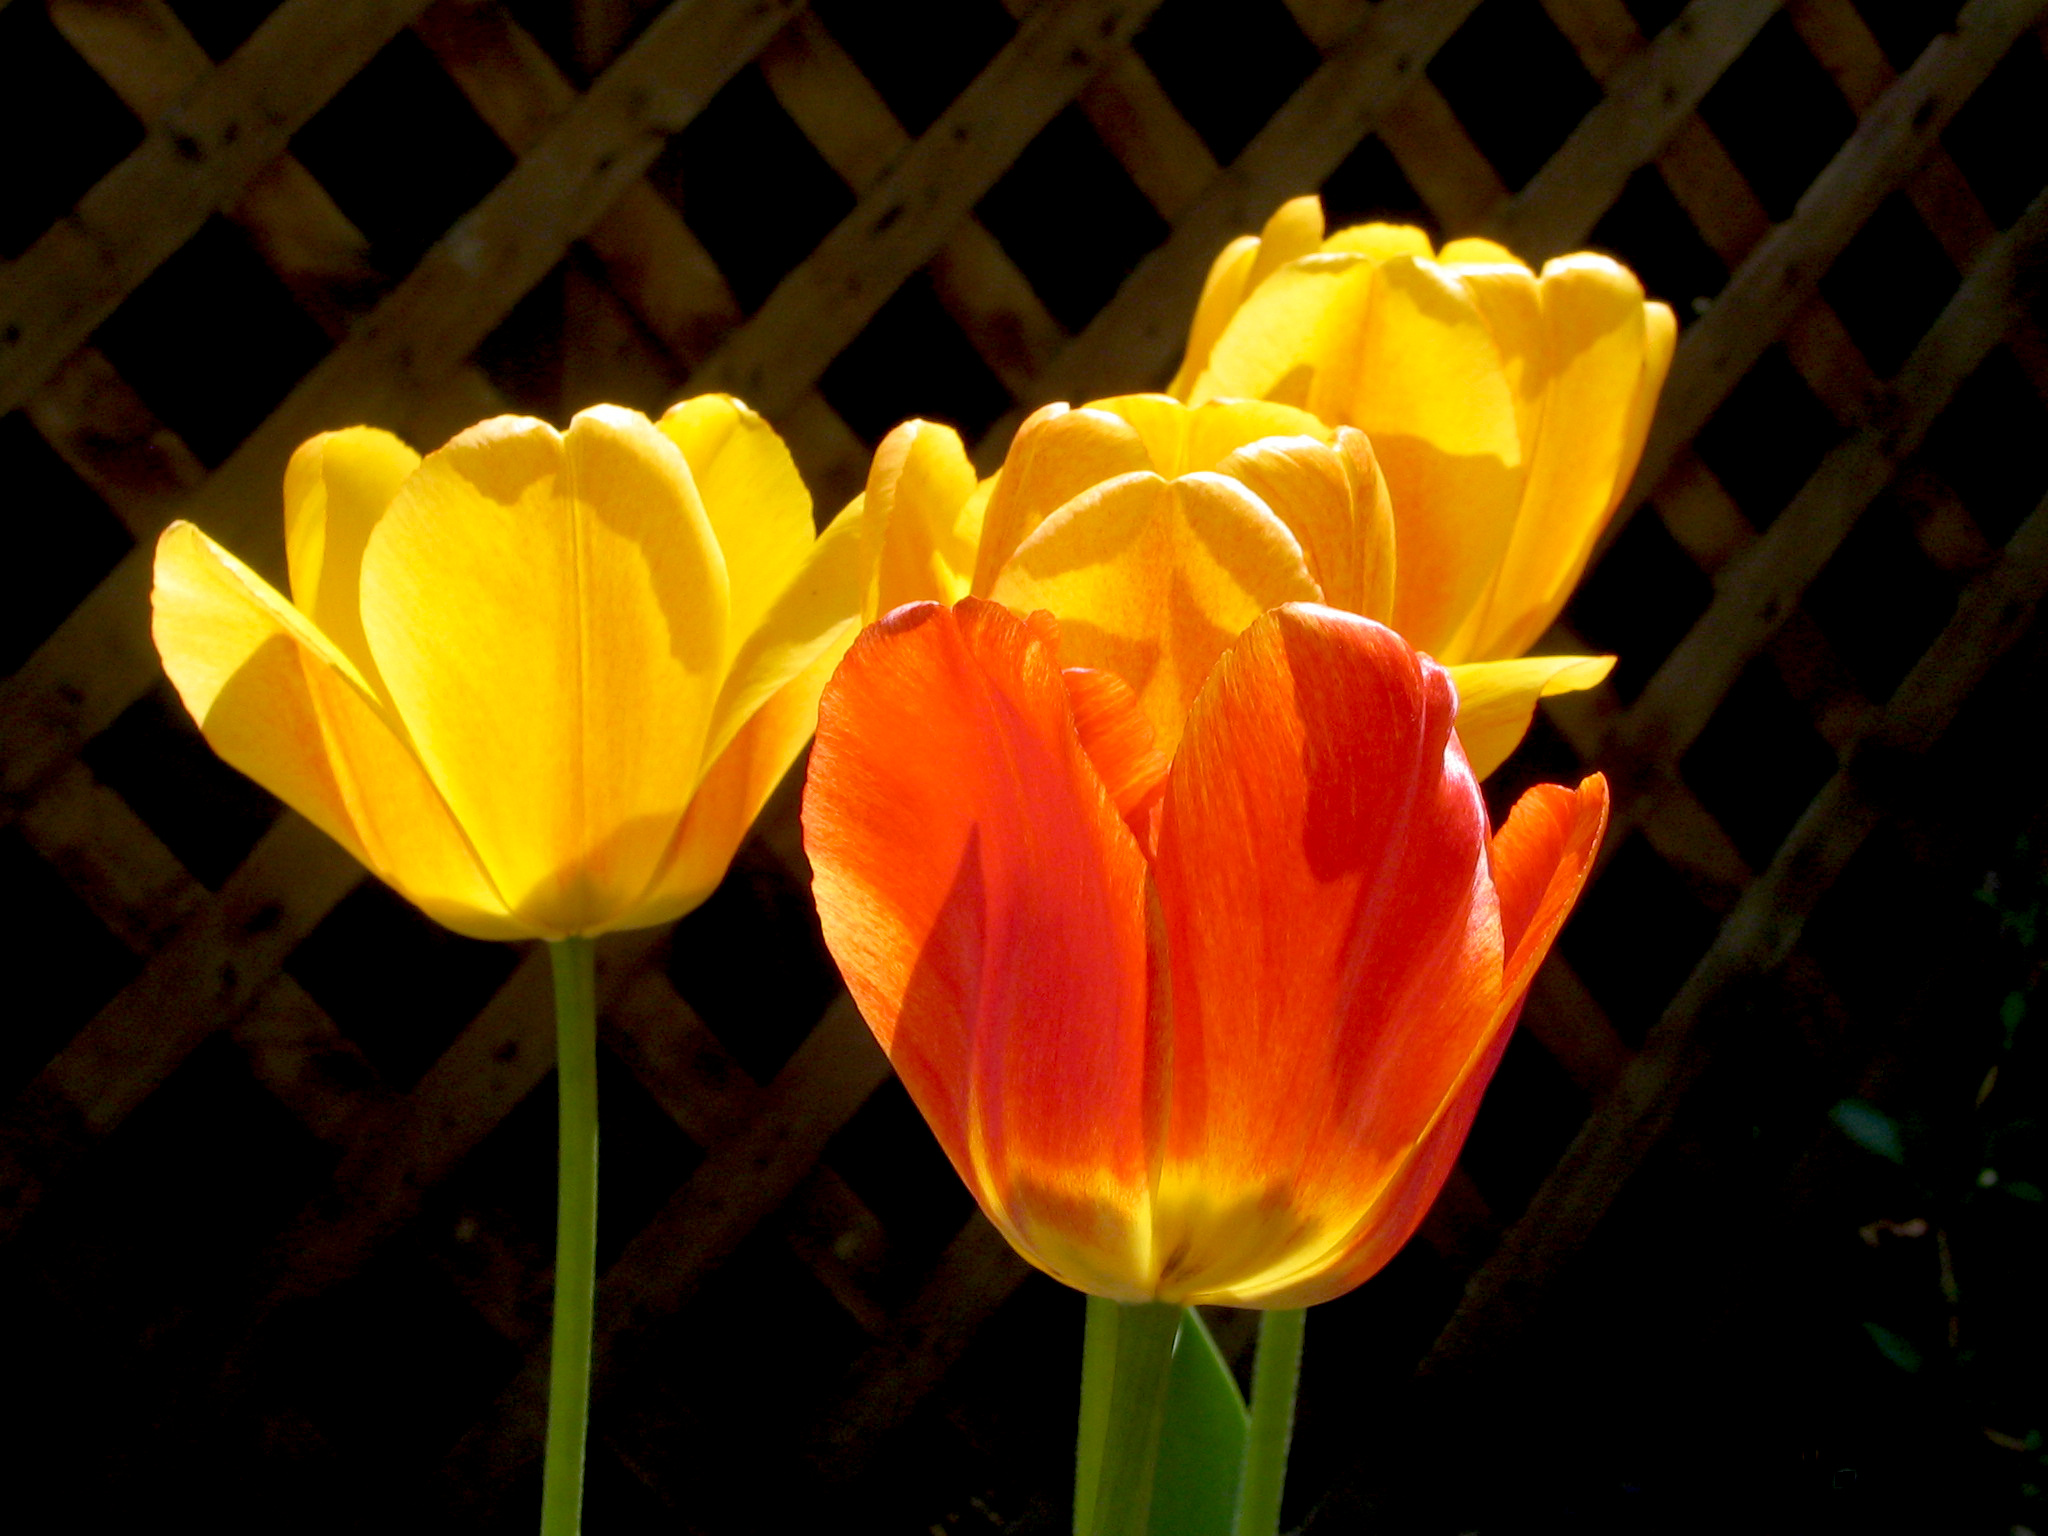 yellowredTulip